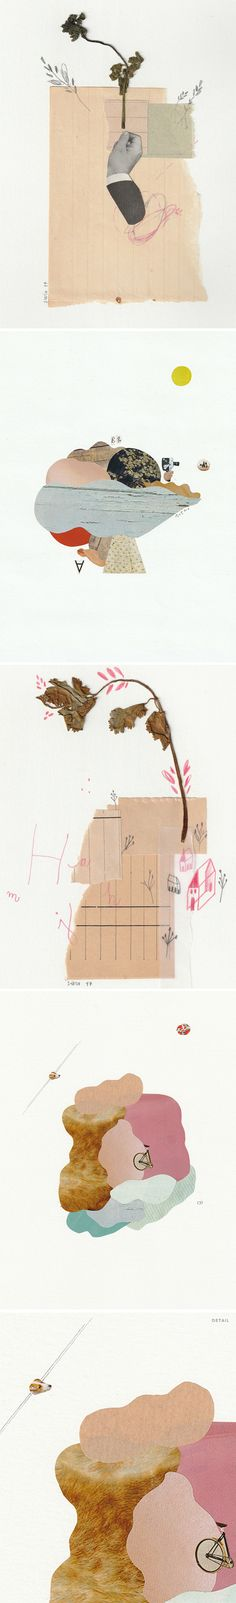 collages by marina siero